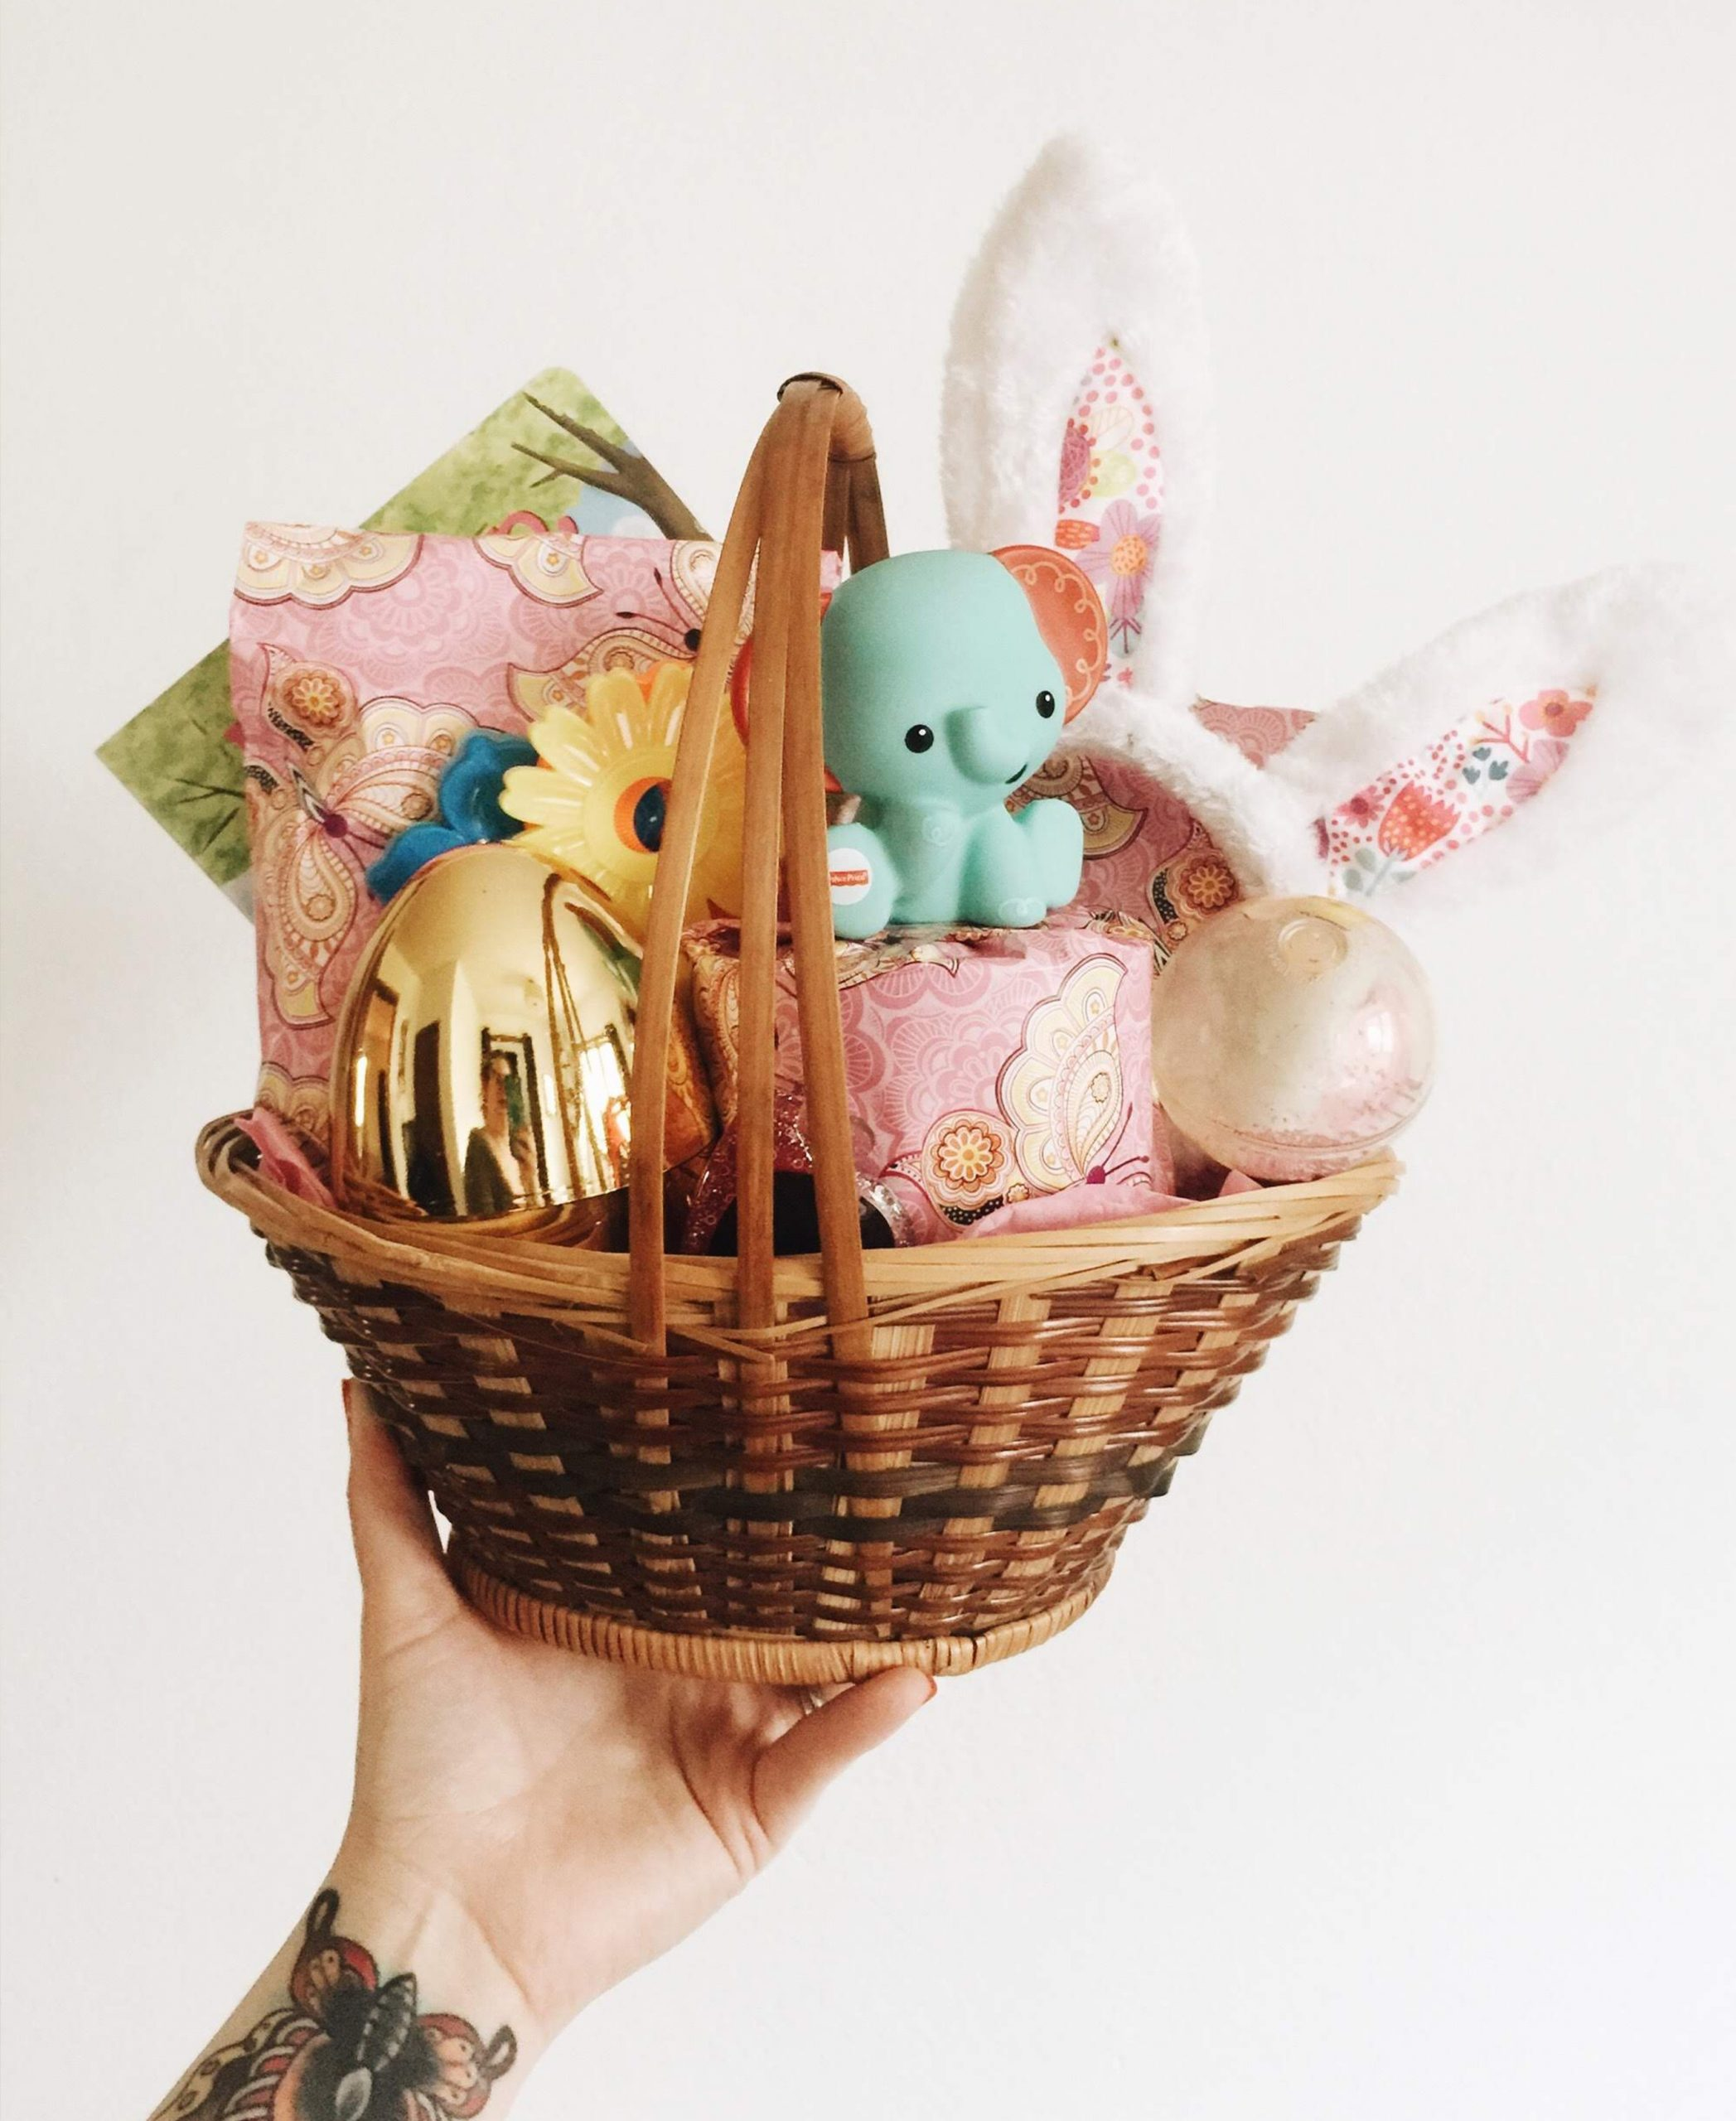 9 Awesome Easter Basket Stuffers for Kids [2021]